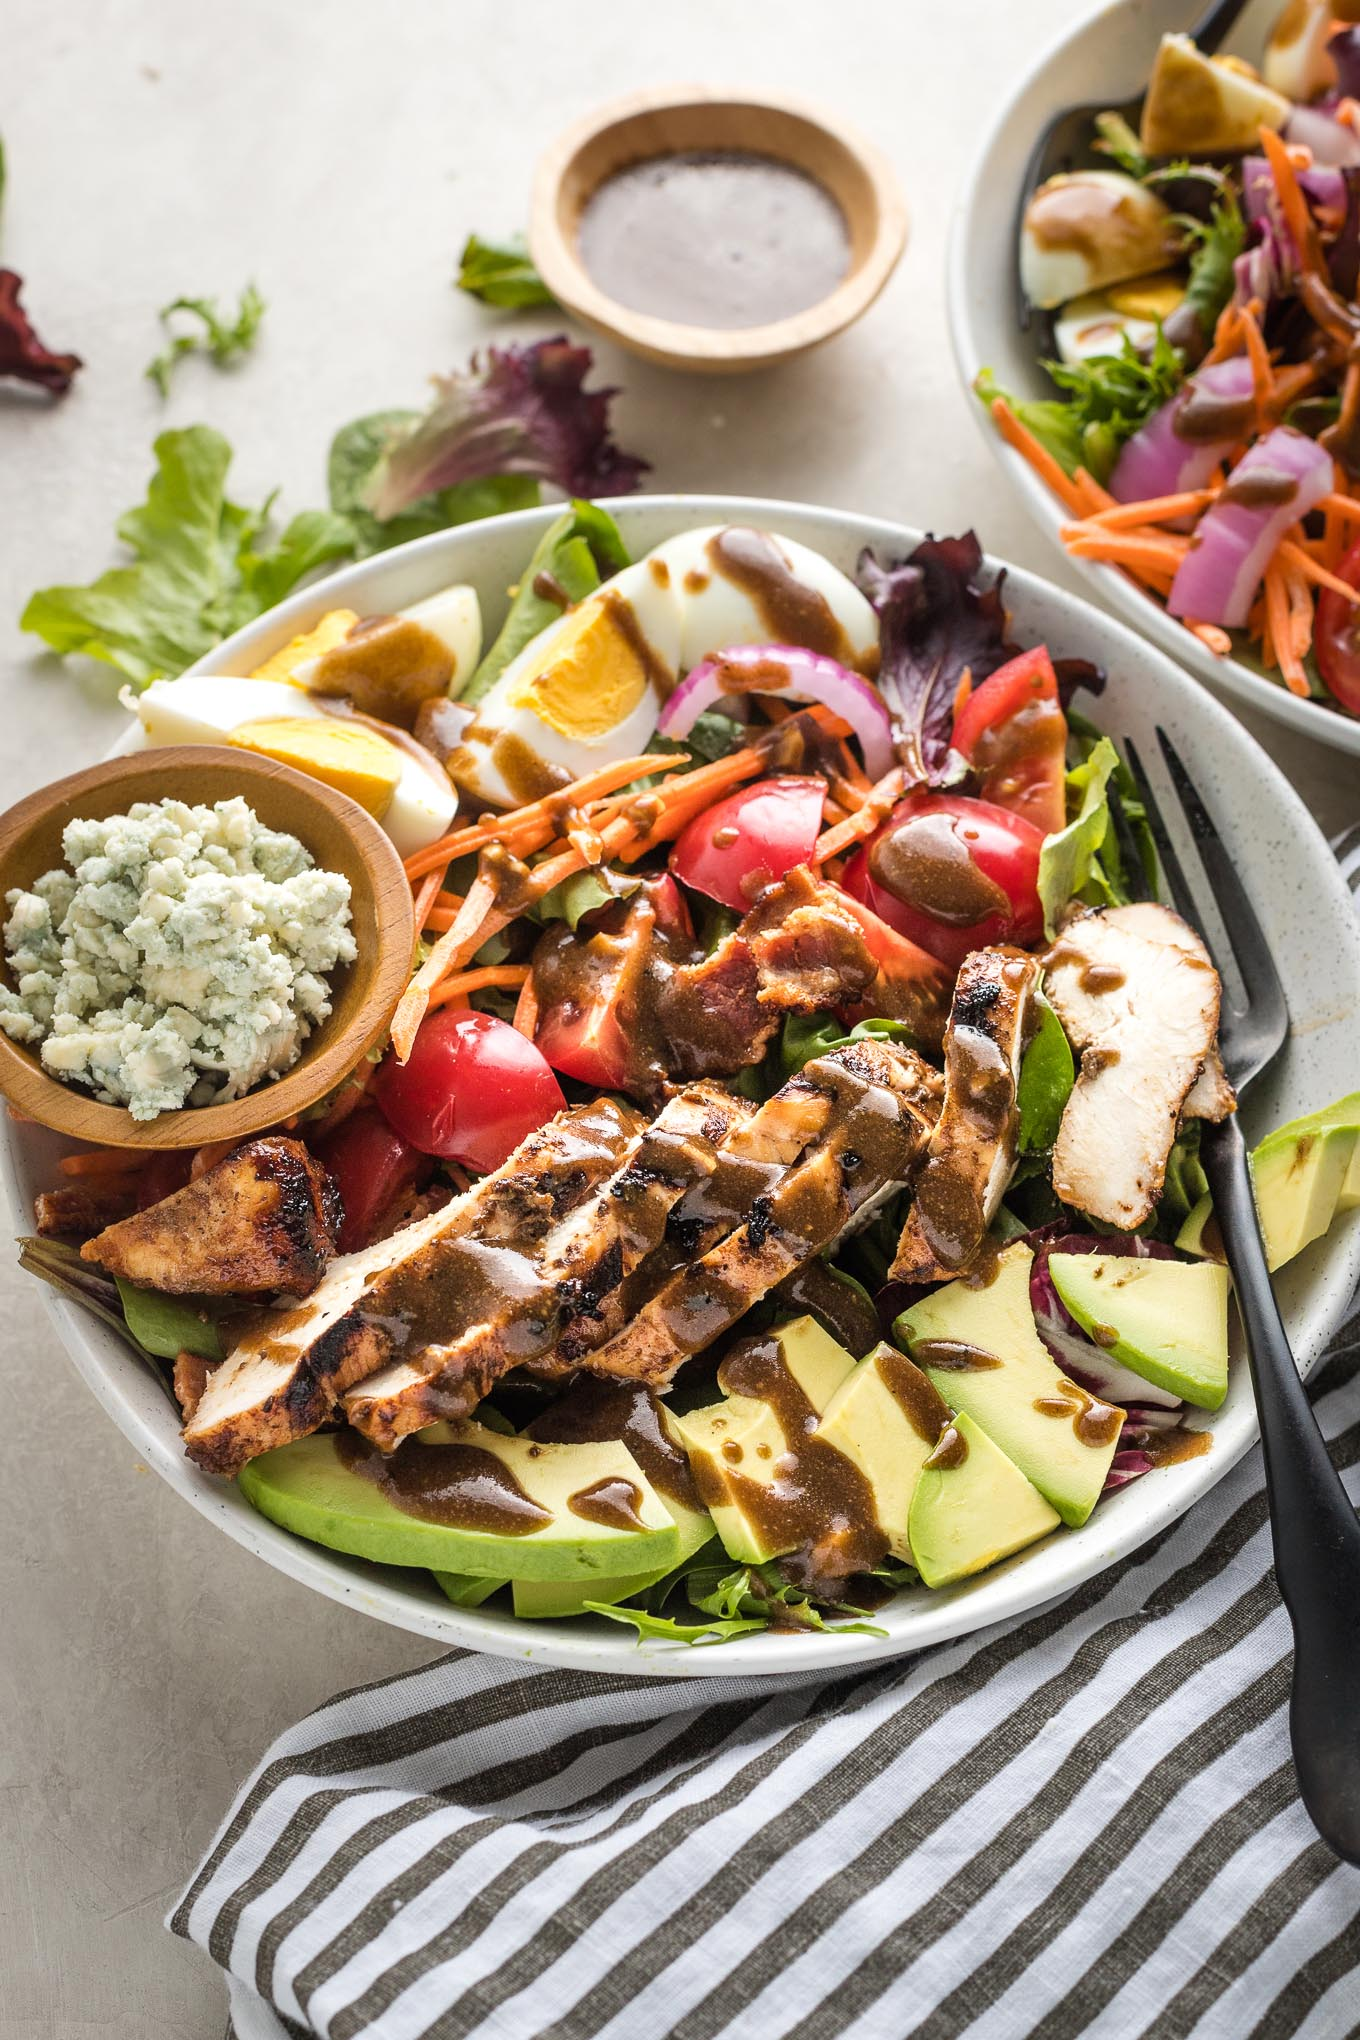 Cobb salads in white bowls served with grilled chicken and balsamic vinaigrette.